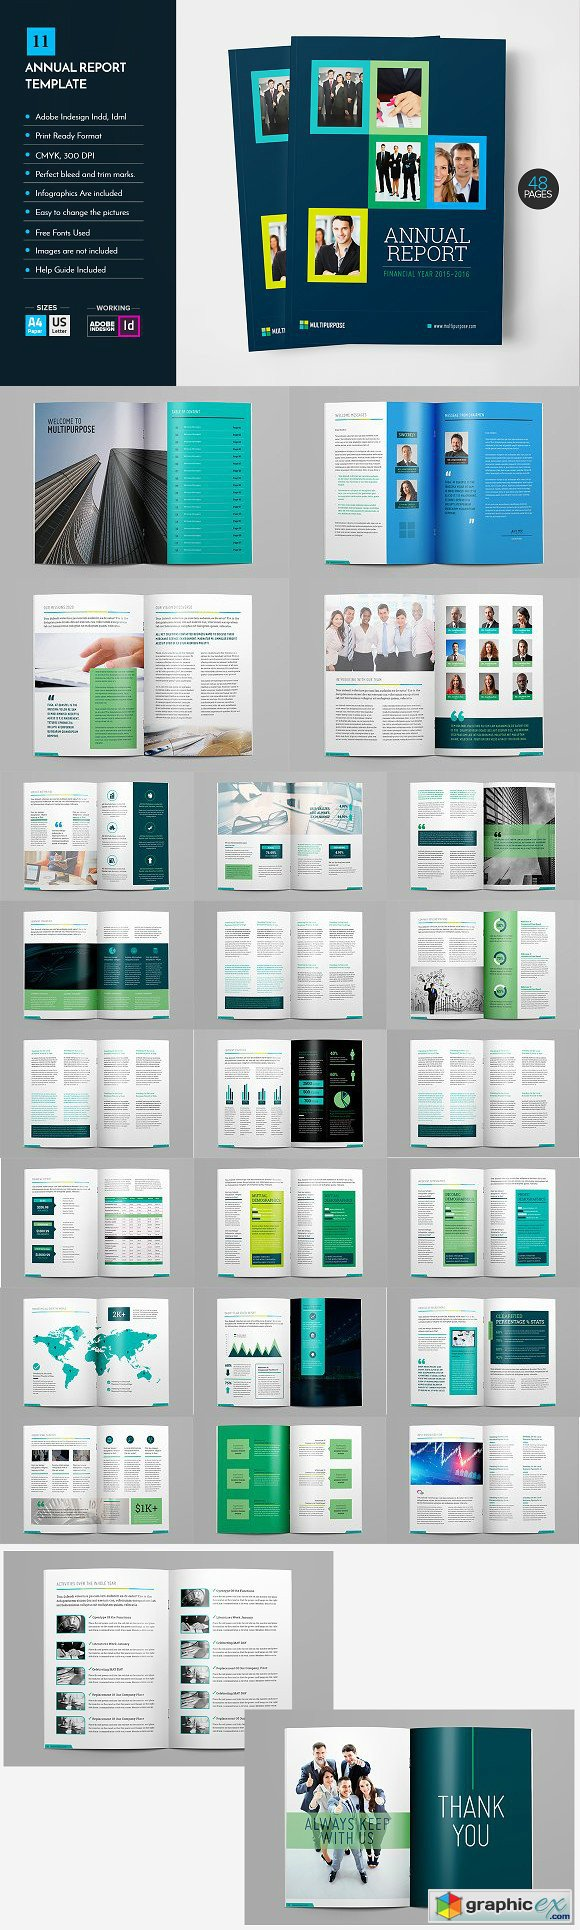 Annual Report Template V11 Free Download Vector Image – Annual Report Template